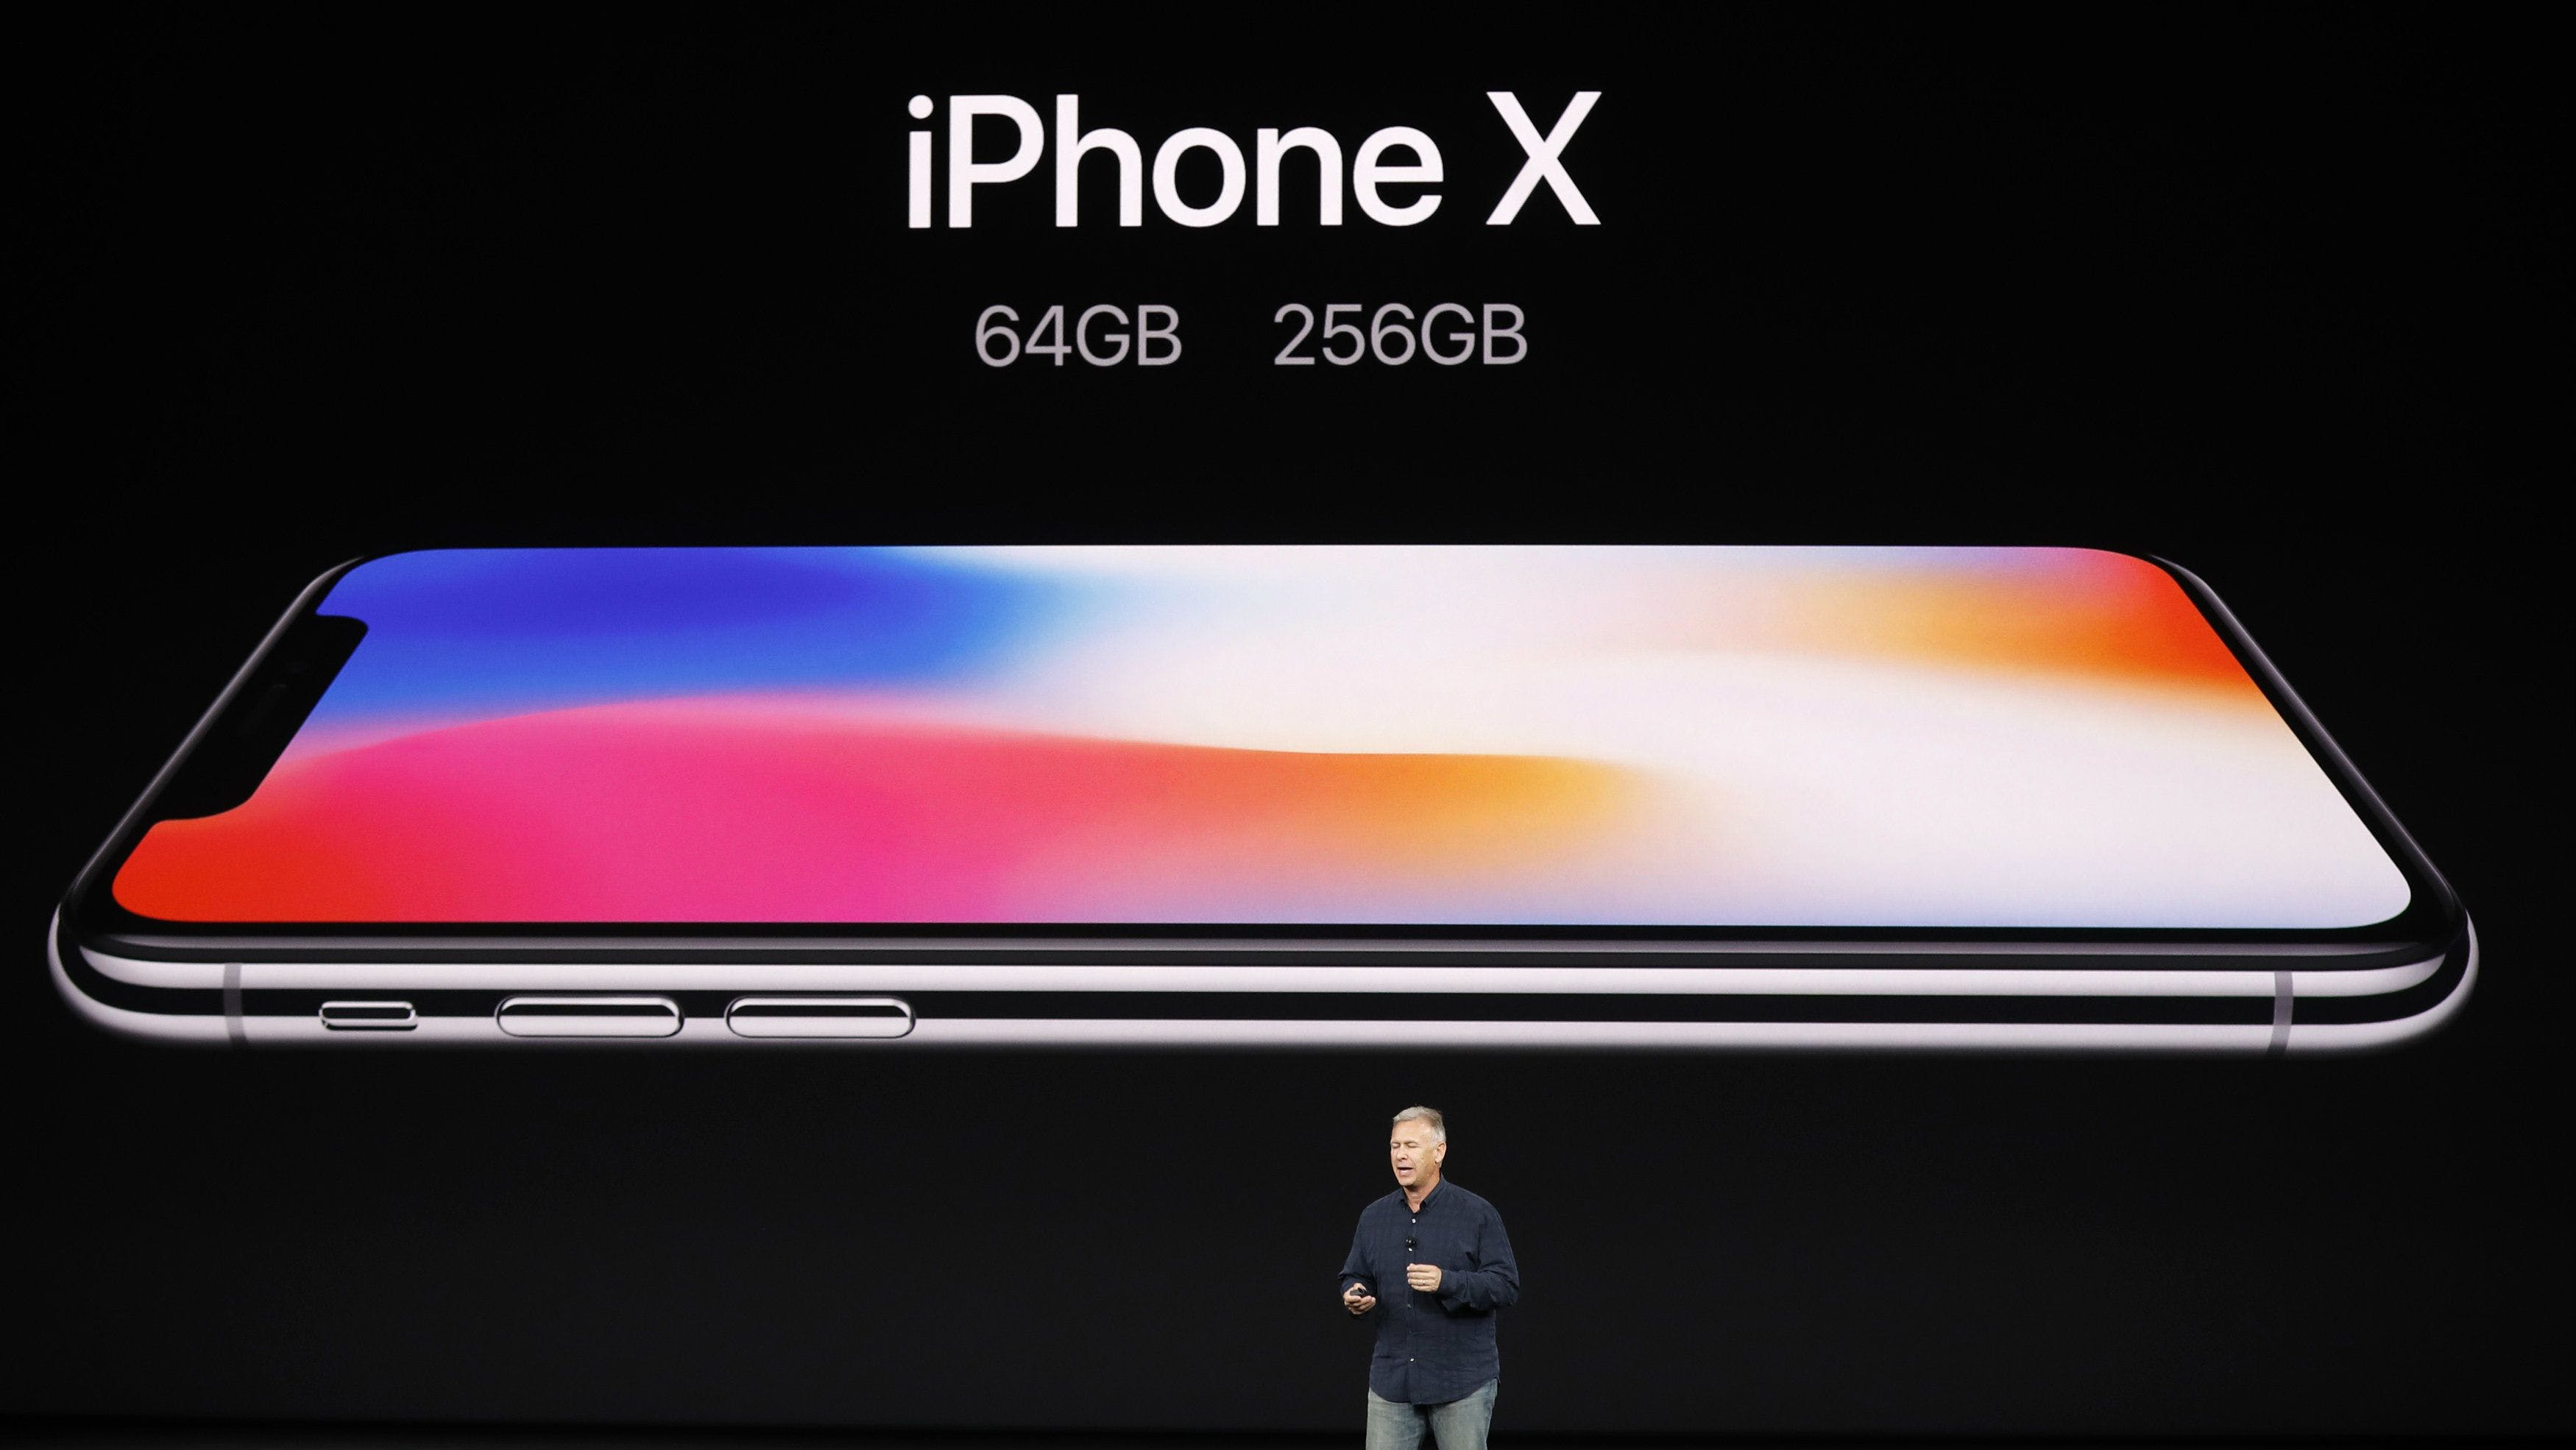 The iPhone X: Is It Worth Getting Your Hands On One Now?